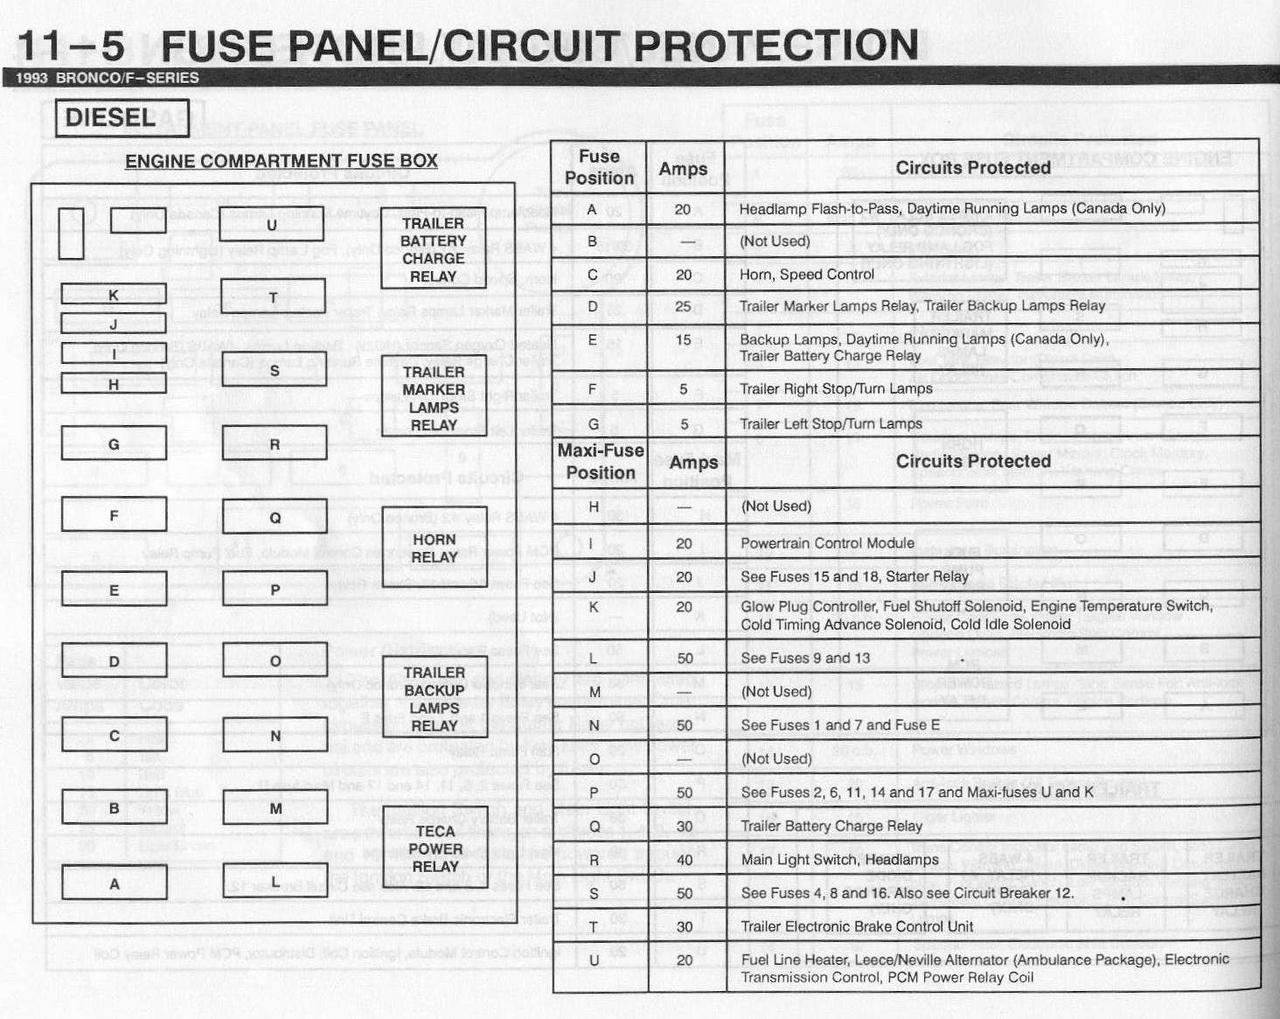 99 expedition fuse box info wiring diagram1999 f250 fuse box 16 ulrich temme de \\u202299 f350 fuse diagram best wiring library